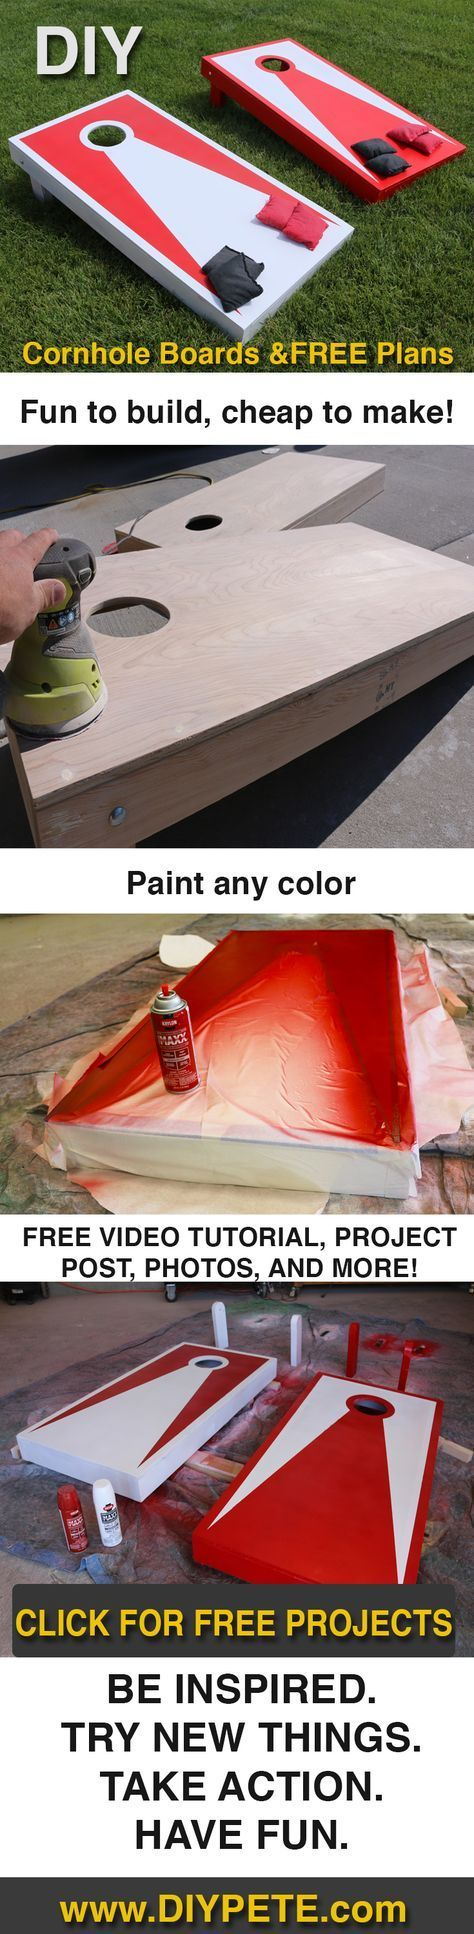 DIY Cornhole Boards! This is a super simple project that will lead to years of fun out on the patio. Video, detailed post, and Free Plans by DIY Pete.